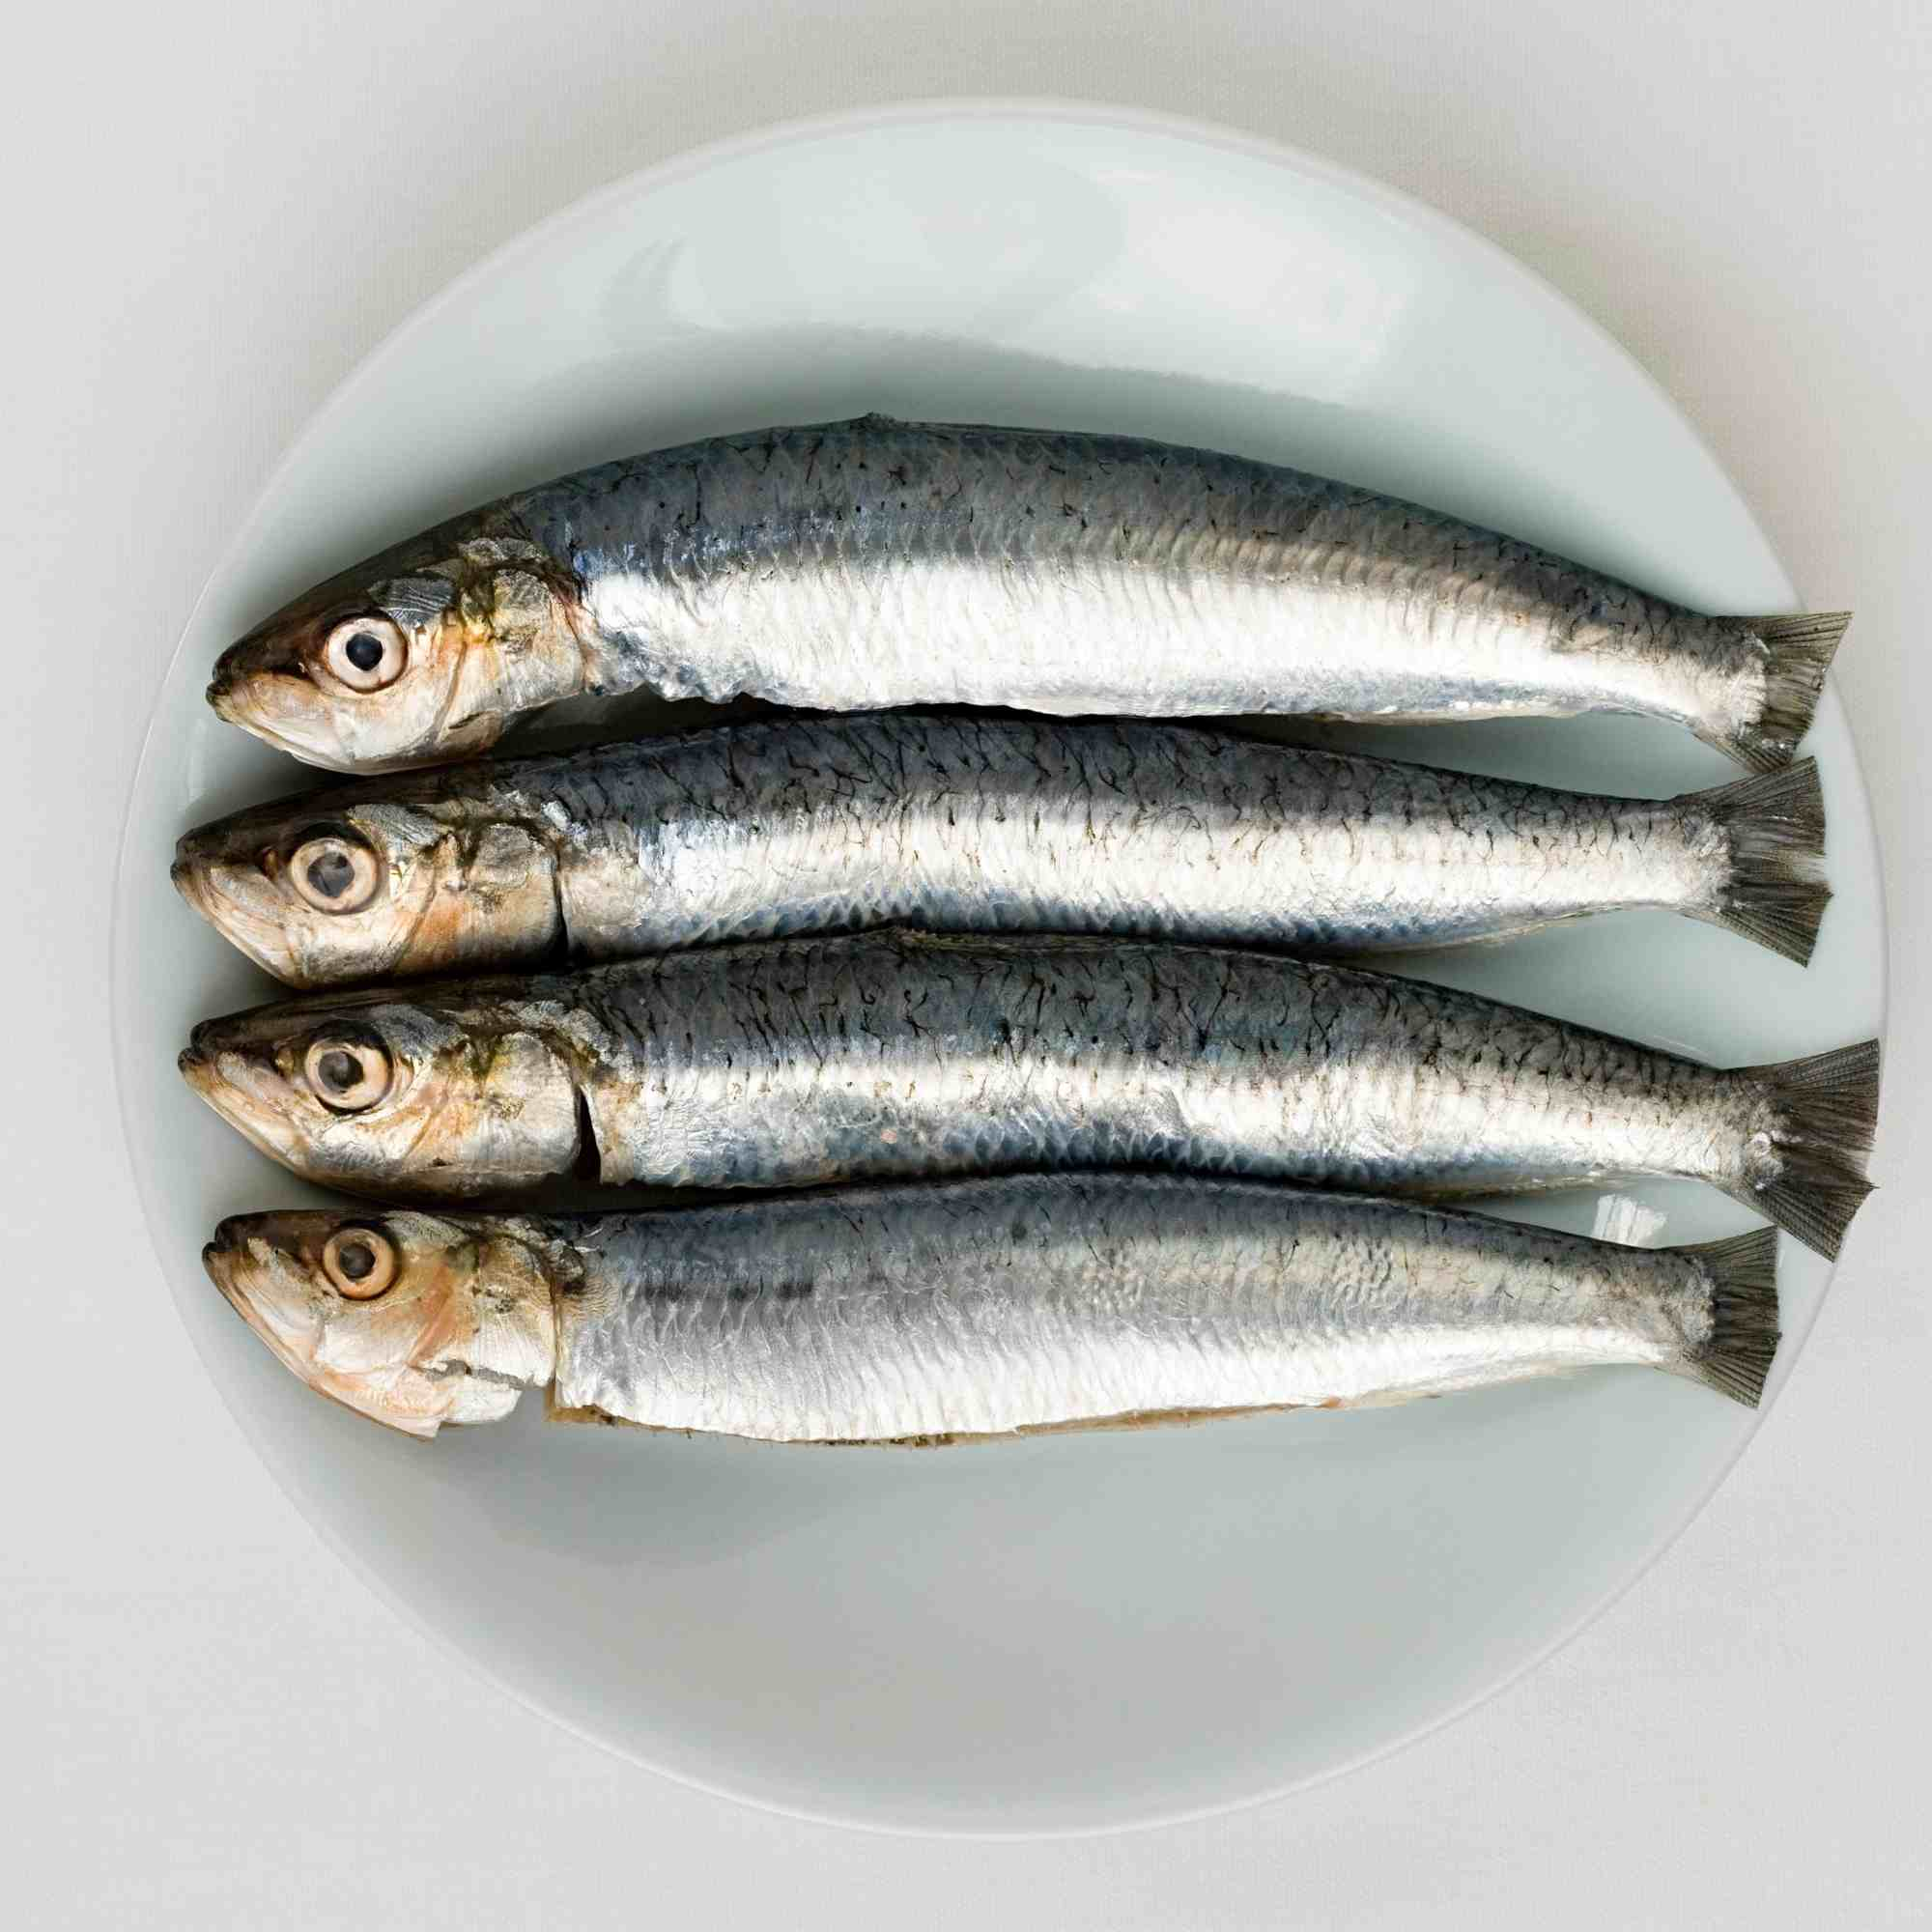 Sardines (Port Lincoln) Per Kg